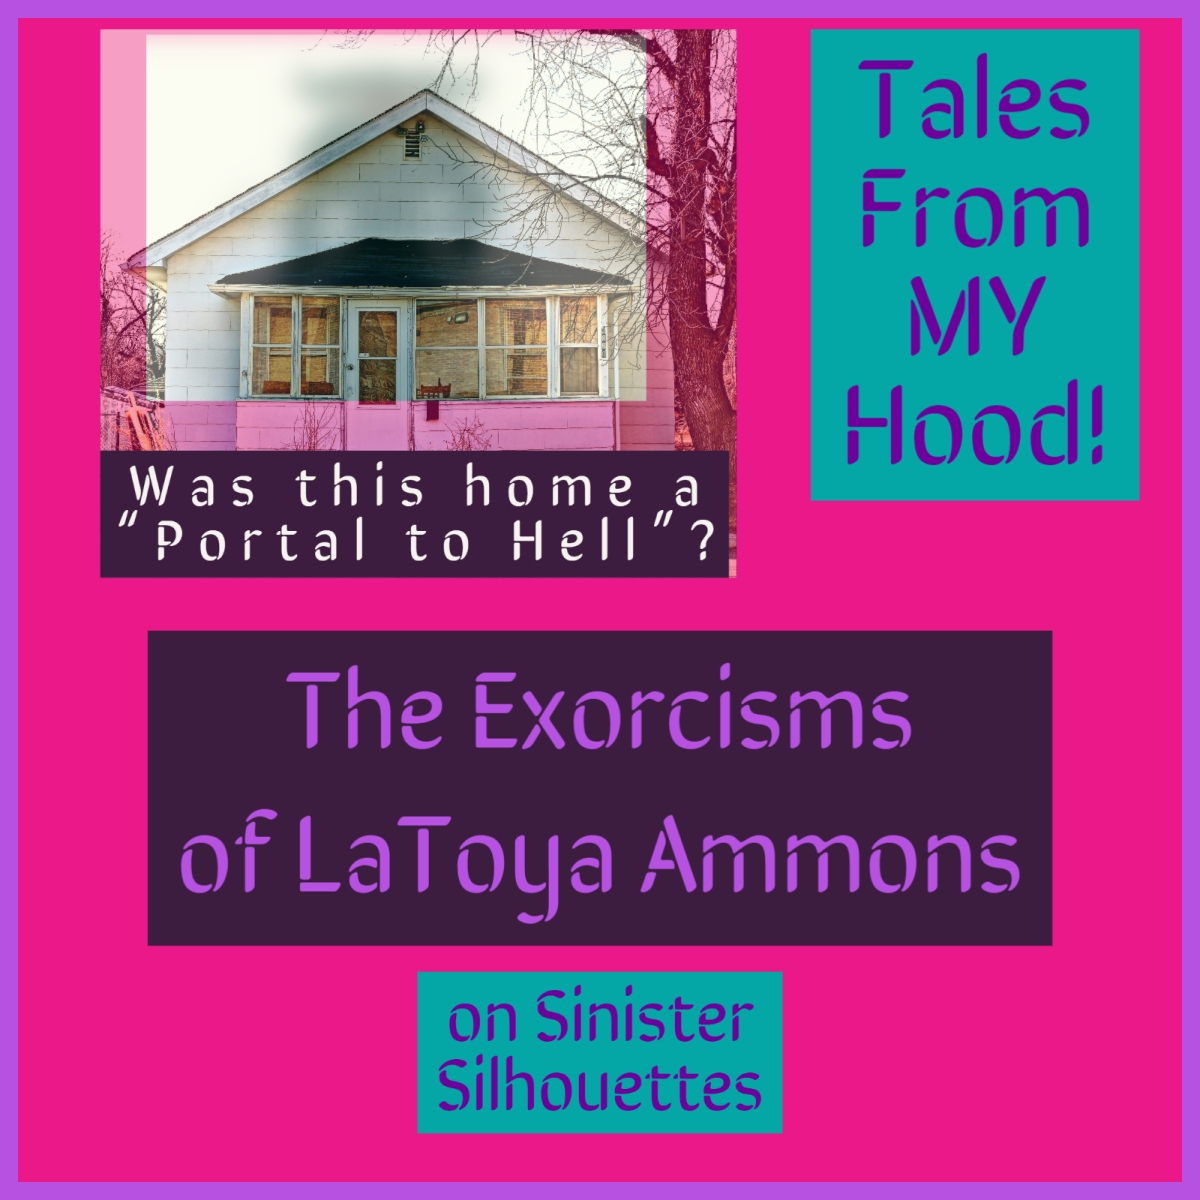 The Exorcisms of LaToya Ammons